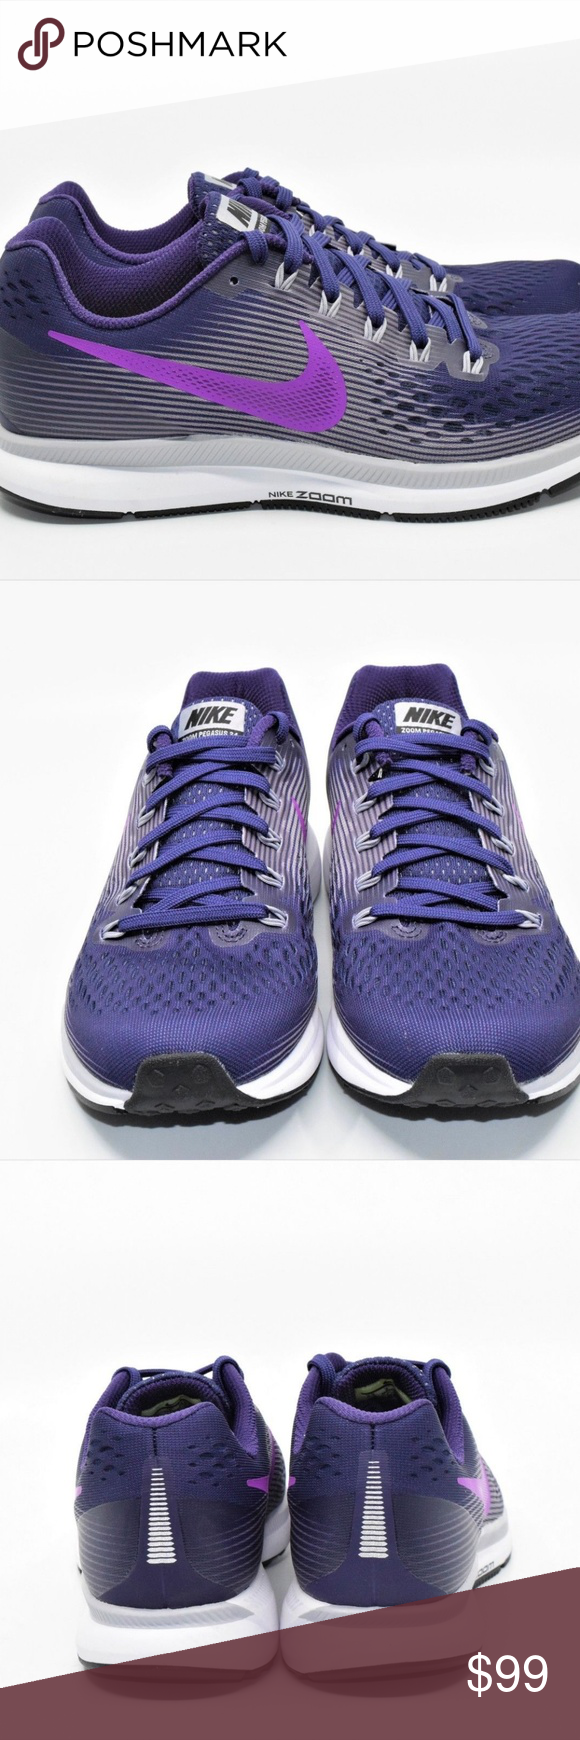 979d19d6850 Nike Air Zoom Pegasus 34 Hyper Ink Purple Nike Air Zoom Pegasus 34 Hyper Ink  Purple Womens Running Shoes 8.5 880560-500 New without box Nike Shoes  Athletic ...